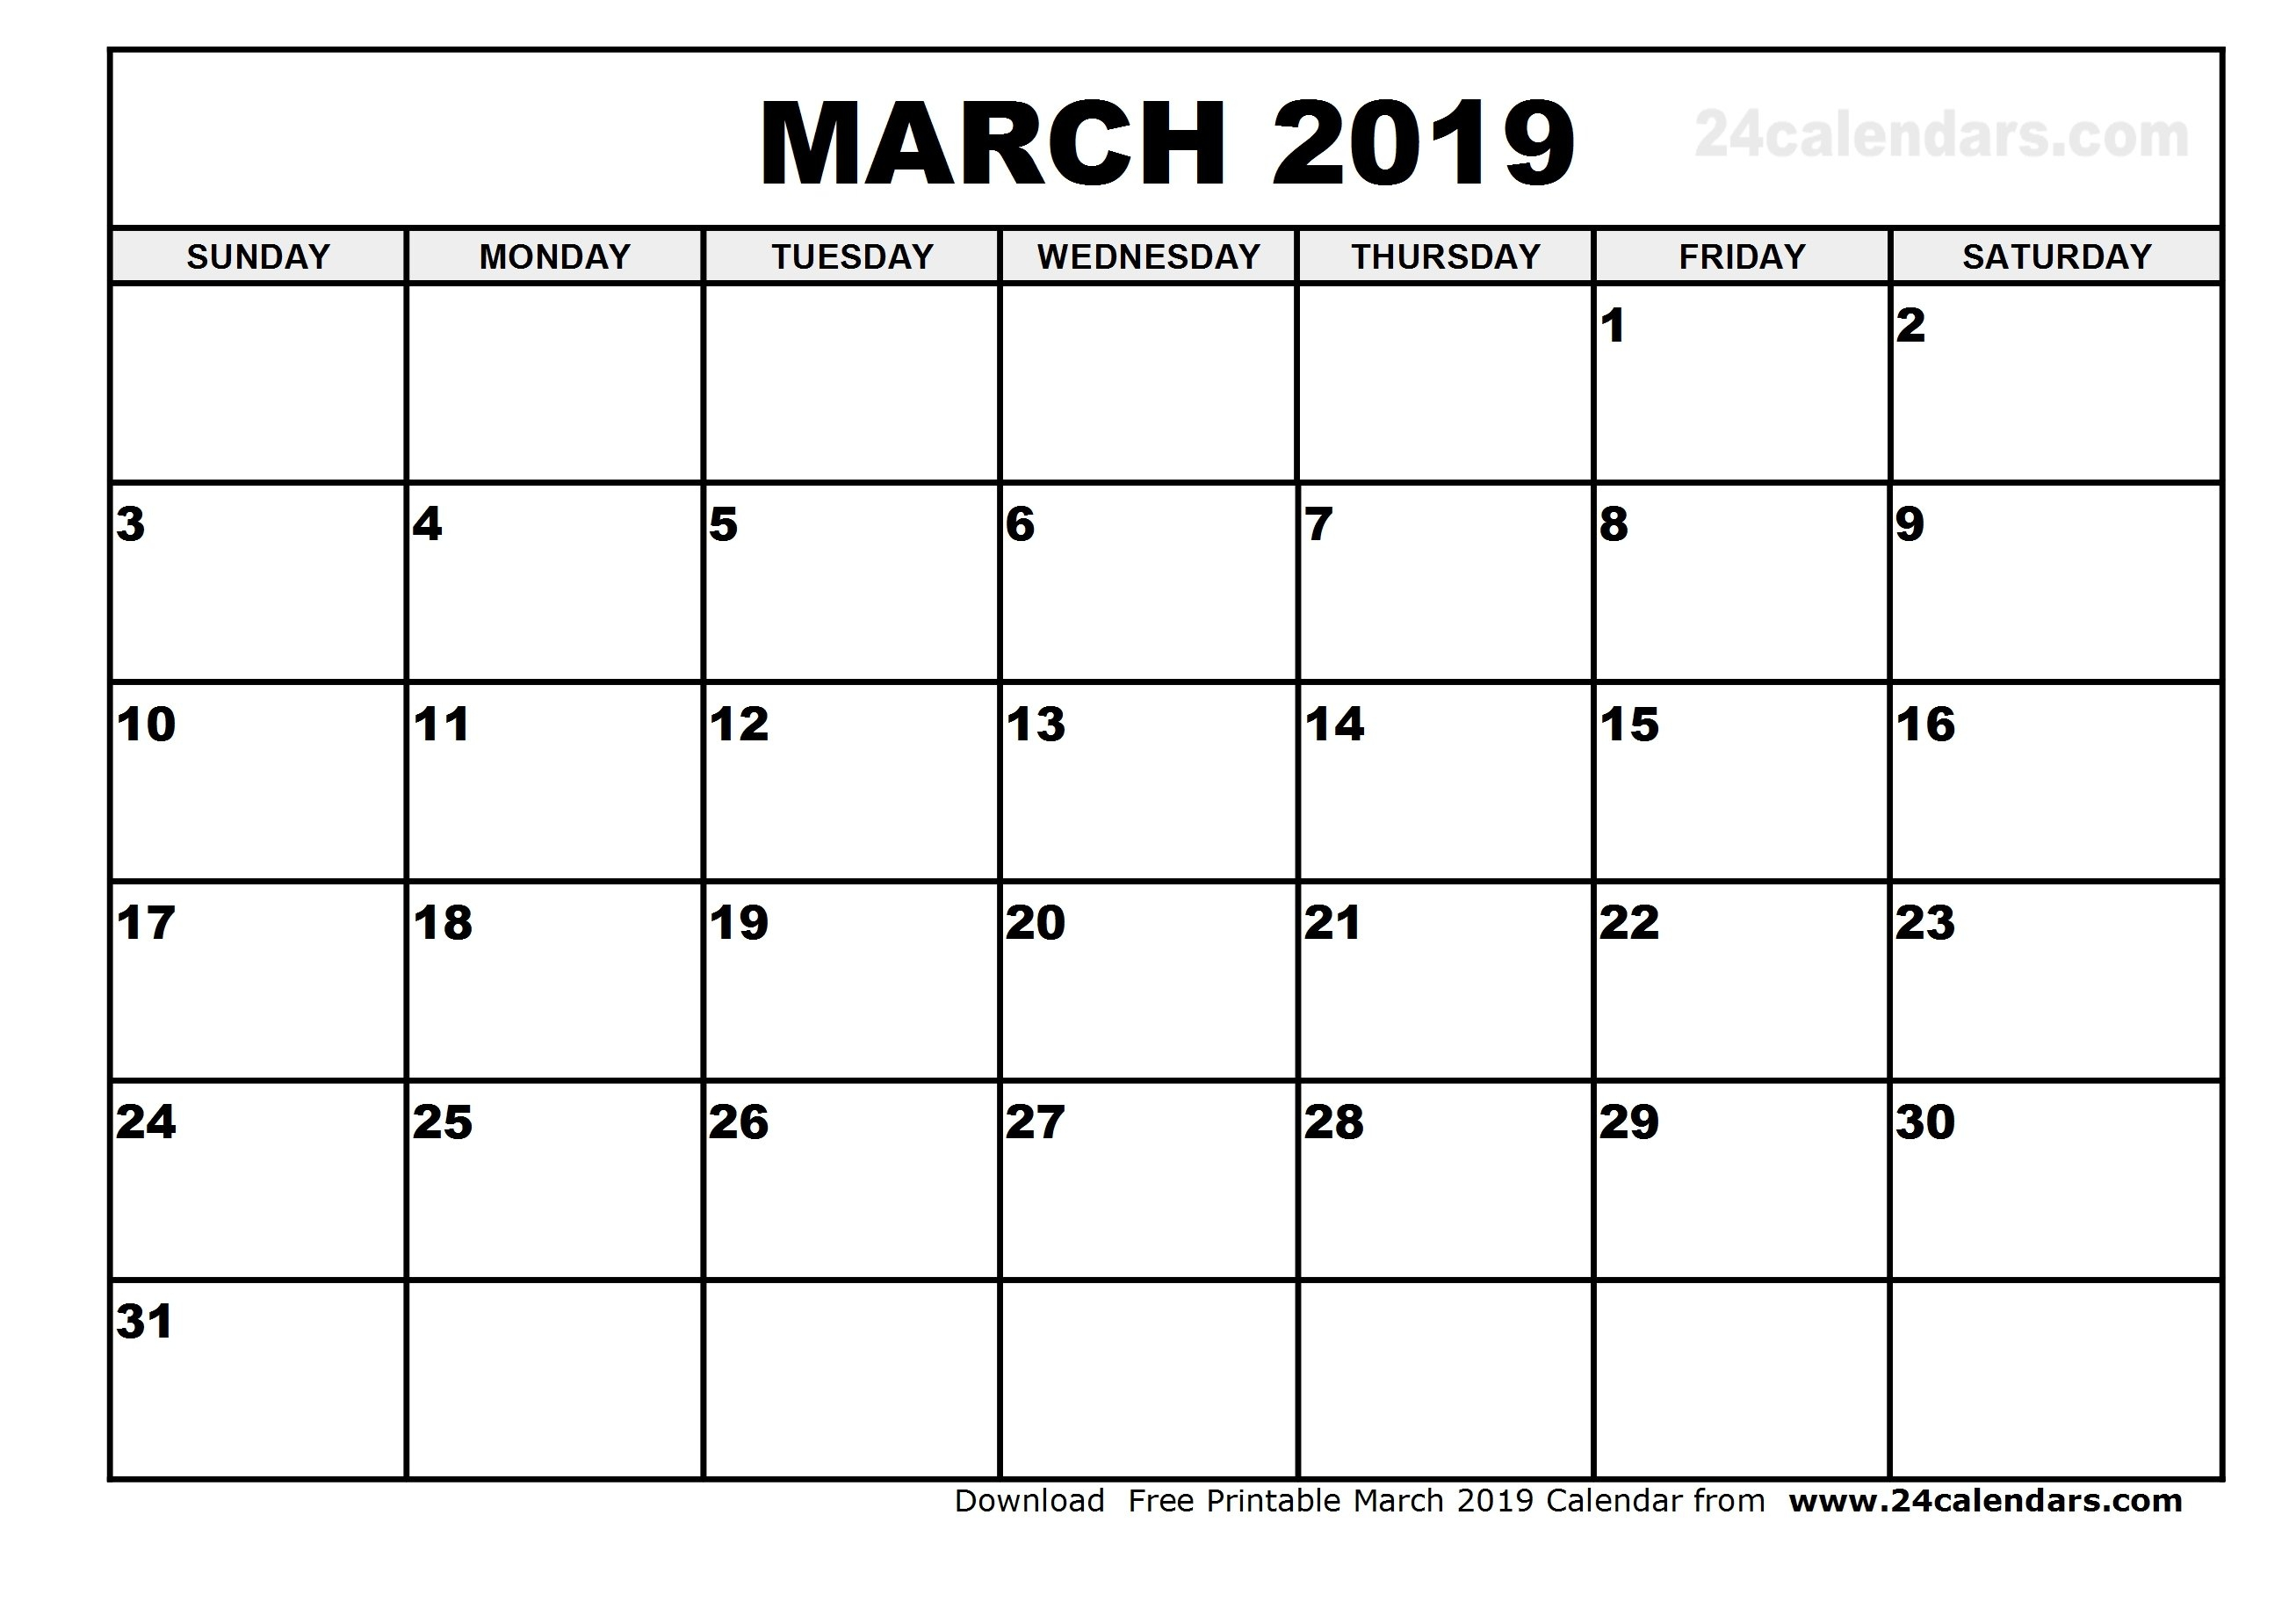 March 2019 Calendar – Printable Month Calendar March 1 2019 Calendar